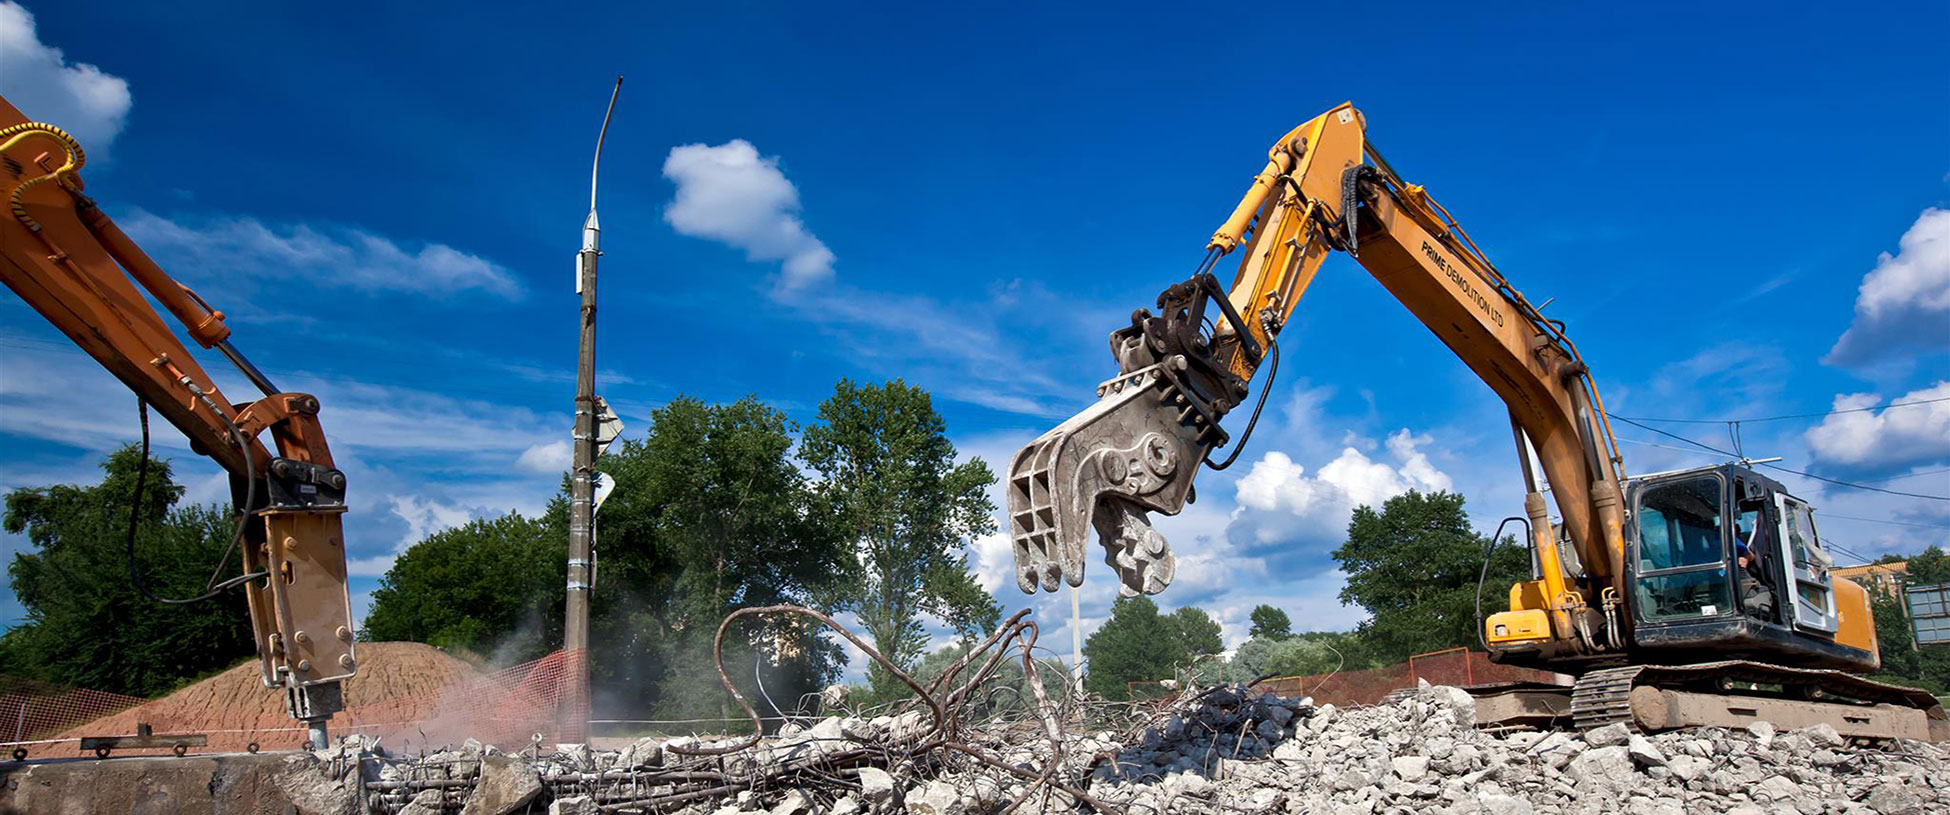 demolition and site clearance contractors